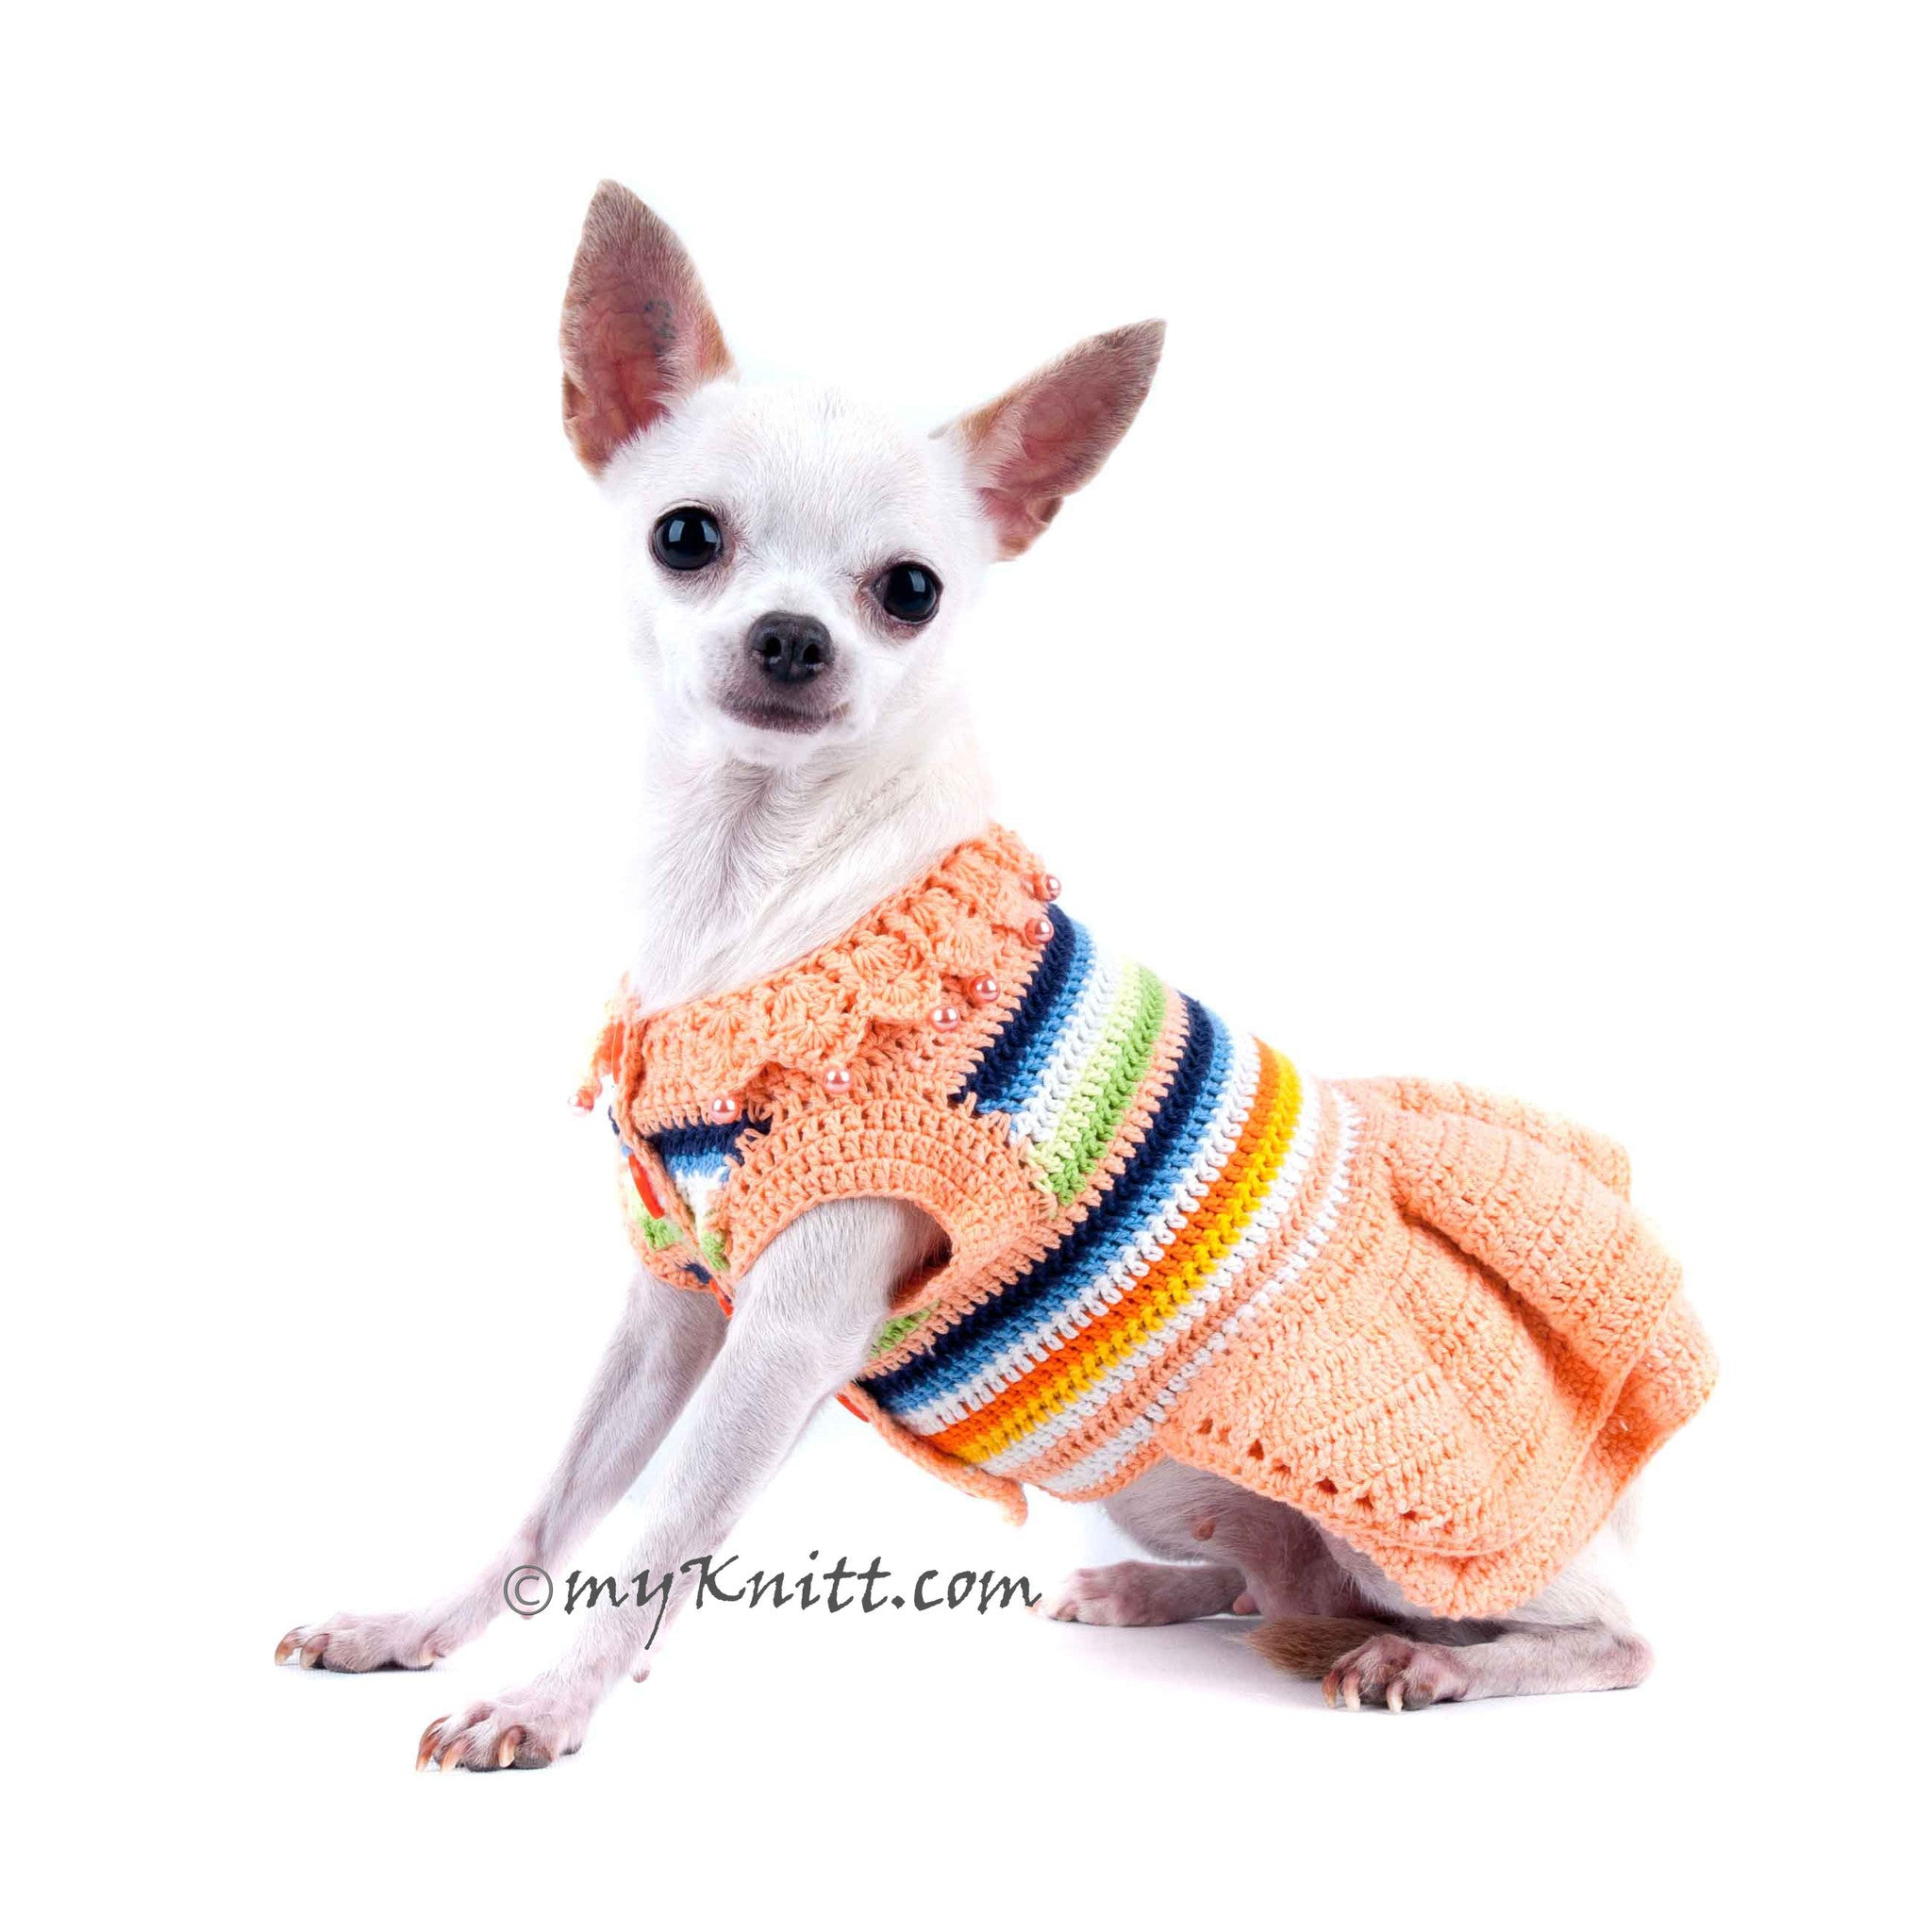 Spring Dog Dress Peach Colorful Crochet Cotton Wavy Skirts Chihuahua Clothes DF40